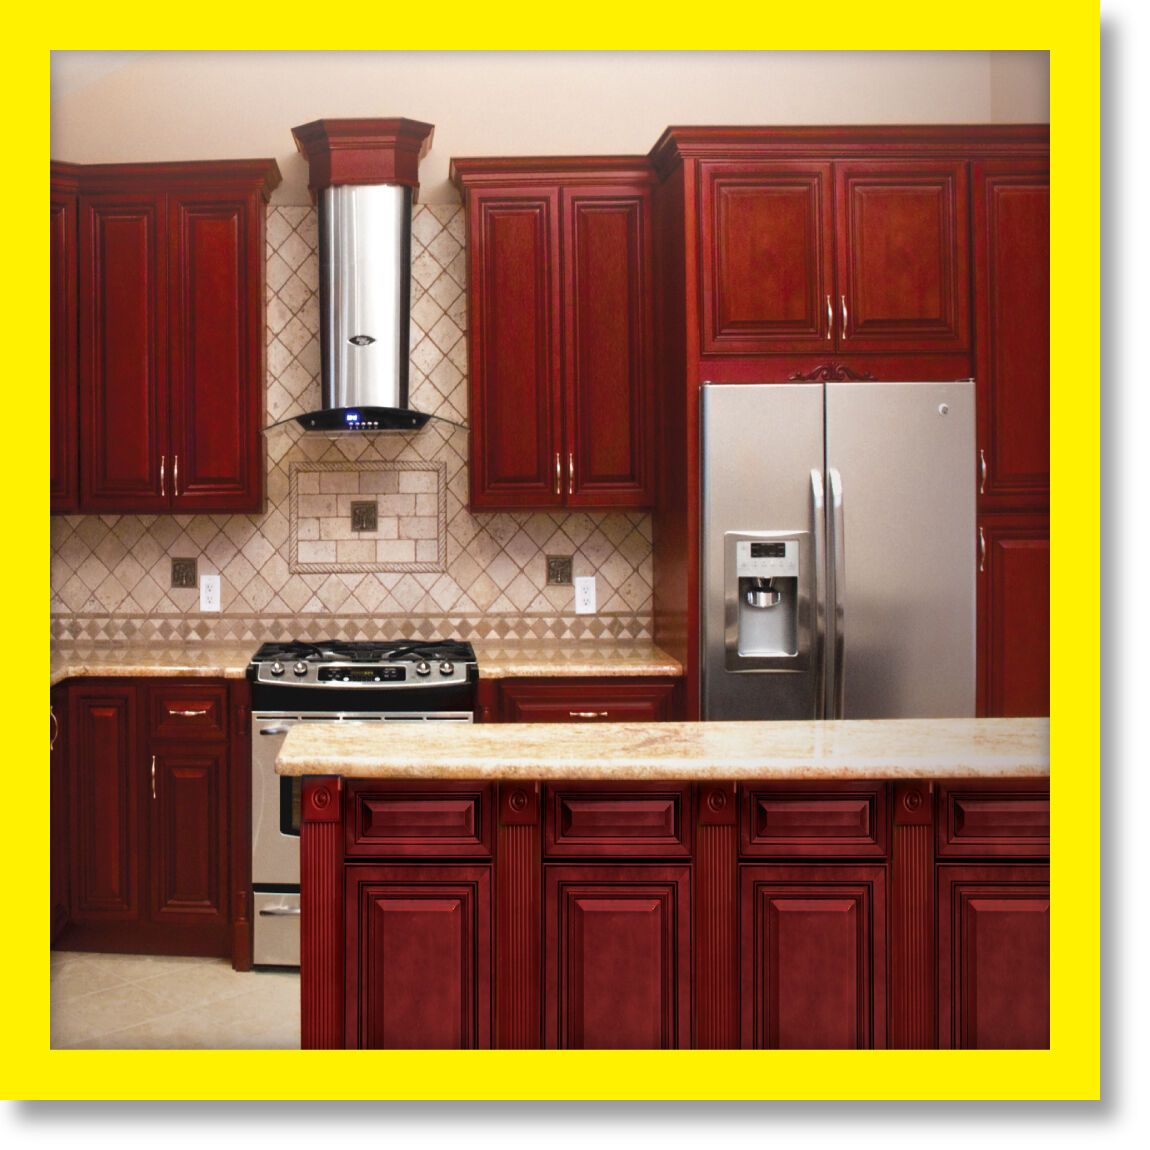 Kitchen Cabinets Cherryville All Wood Cherry Stained Maple Group Sale Kcch3 Wooden Kitchen Cabinets Kitchen Cabinets Custom Kitchen Cabinets